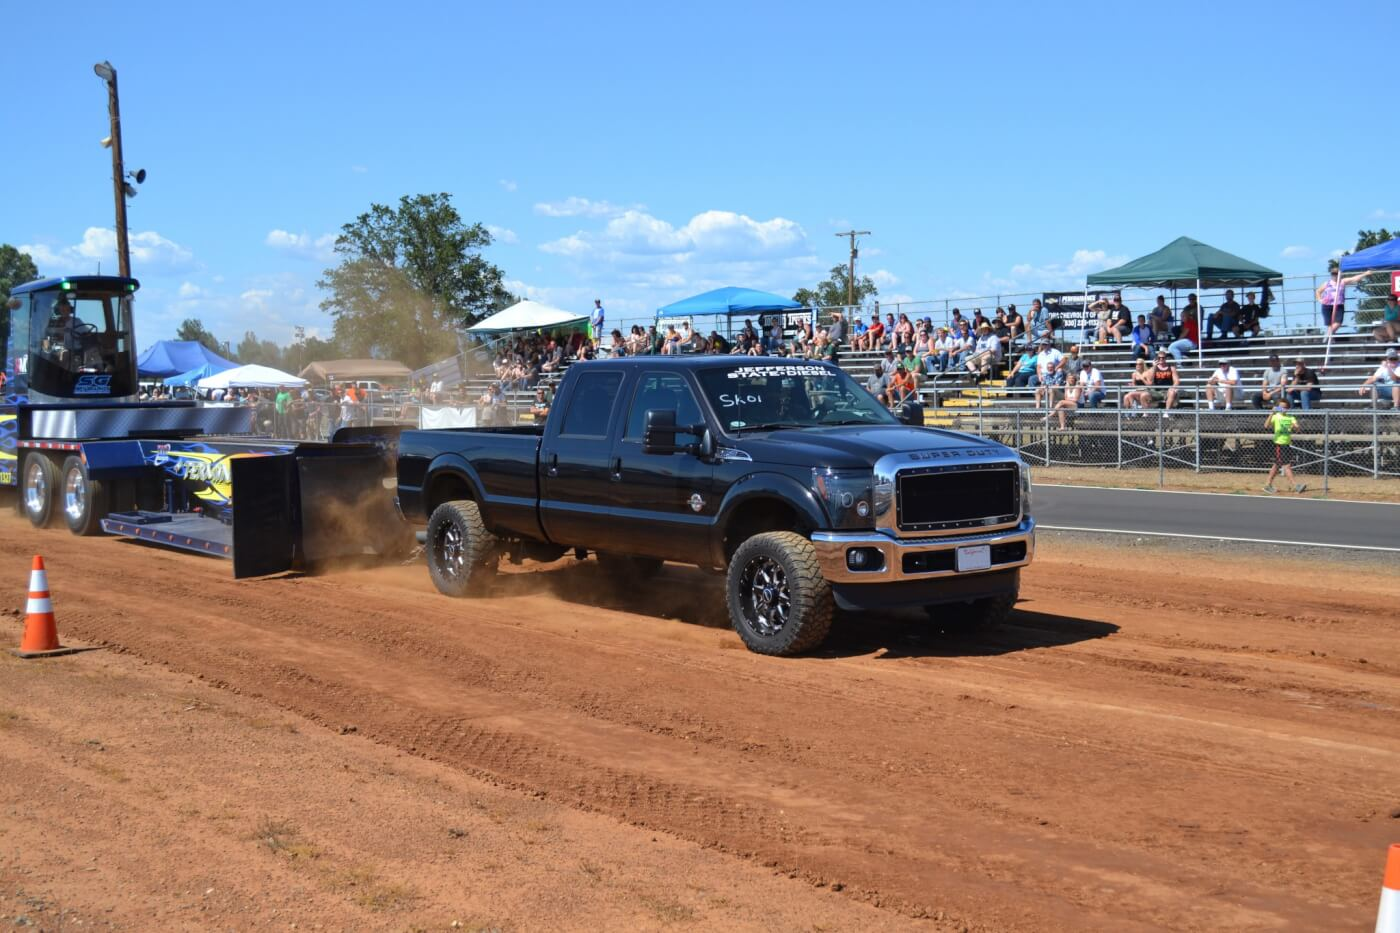 Jeremy Wright, one of the co-owners of Jefferson State Diesel, made an appearance in the Stock Class, where he finished mid-pack in his daily driven Ford.